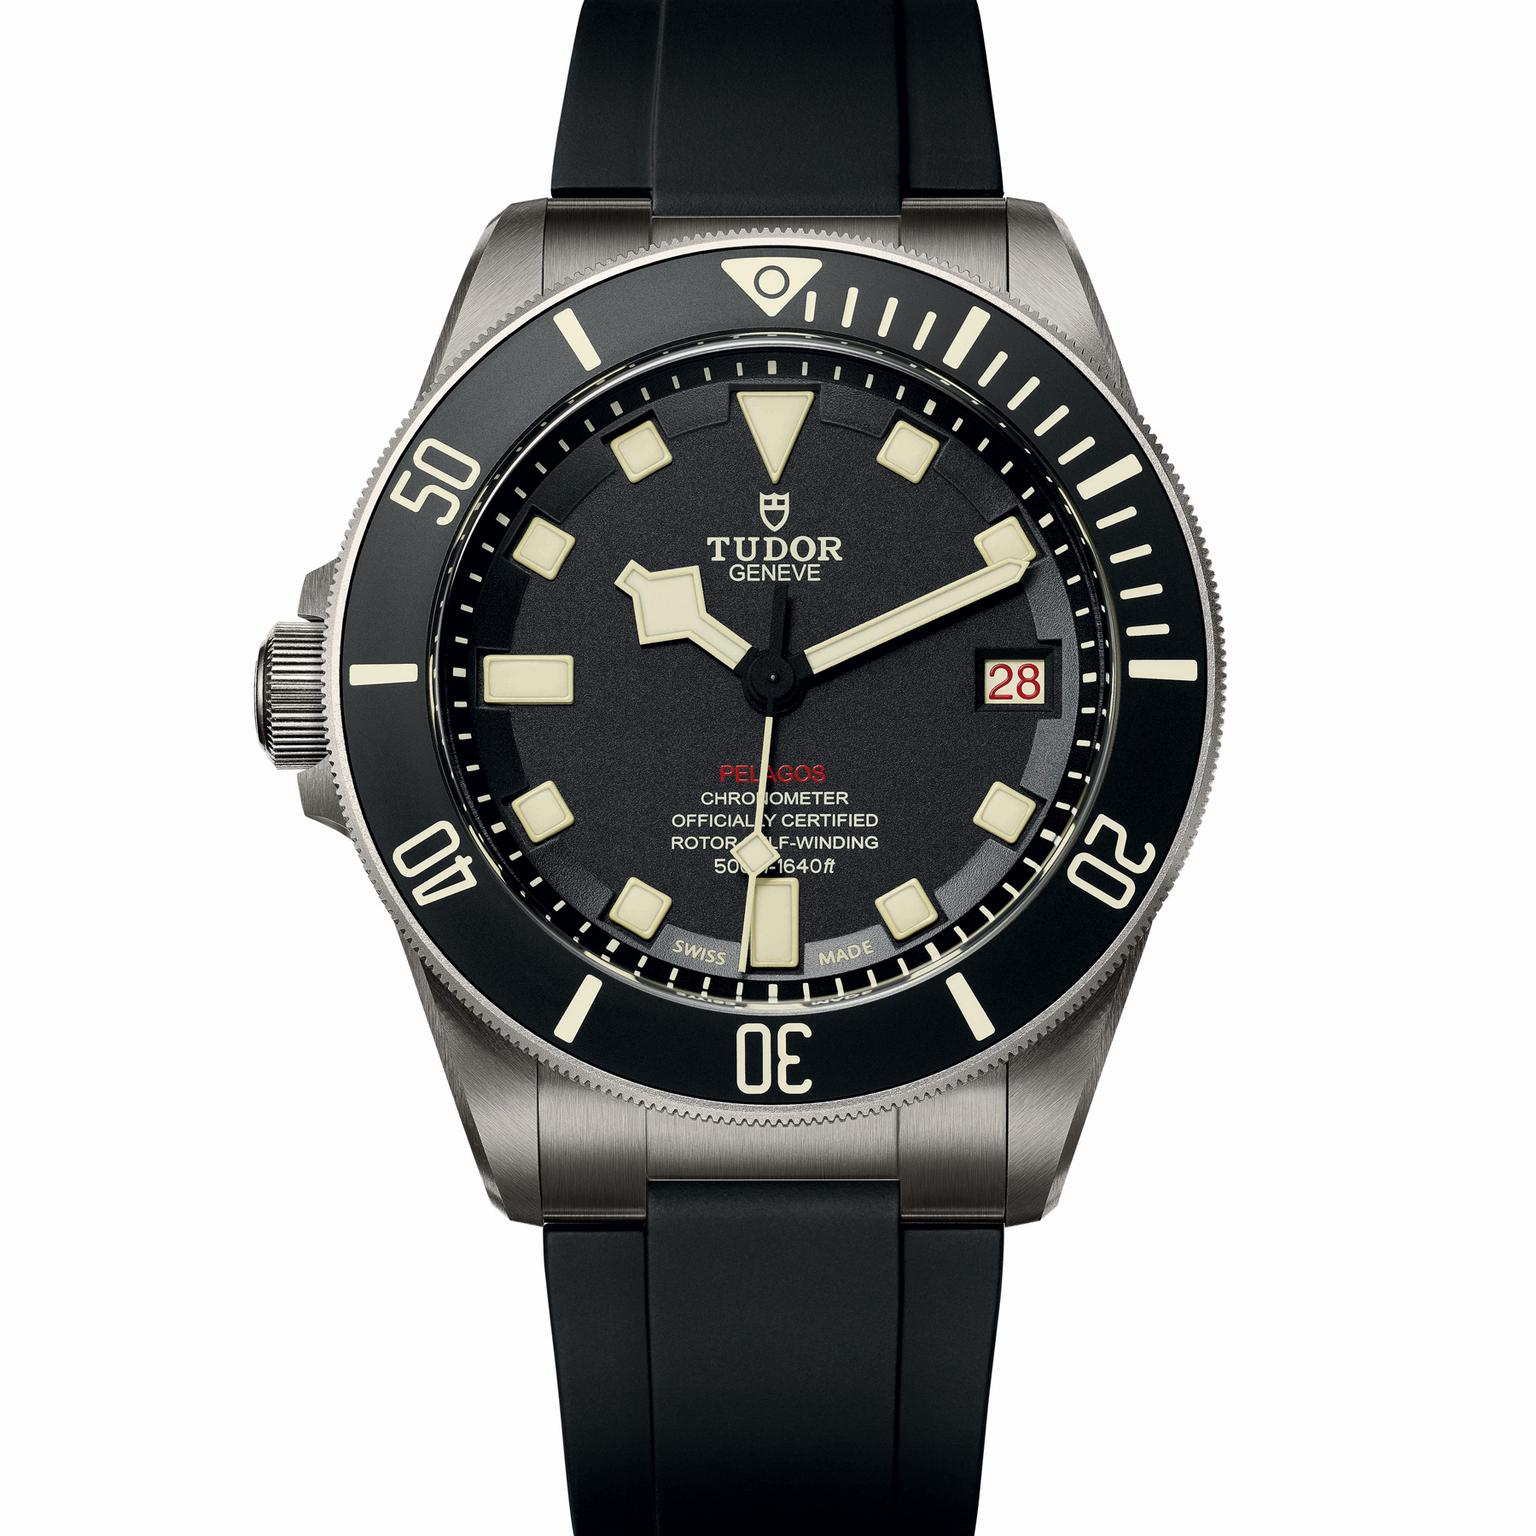 Pelagos lhd left handed dive watch tudor the jewellery - Tudor dive watch price ...